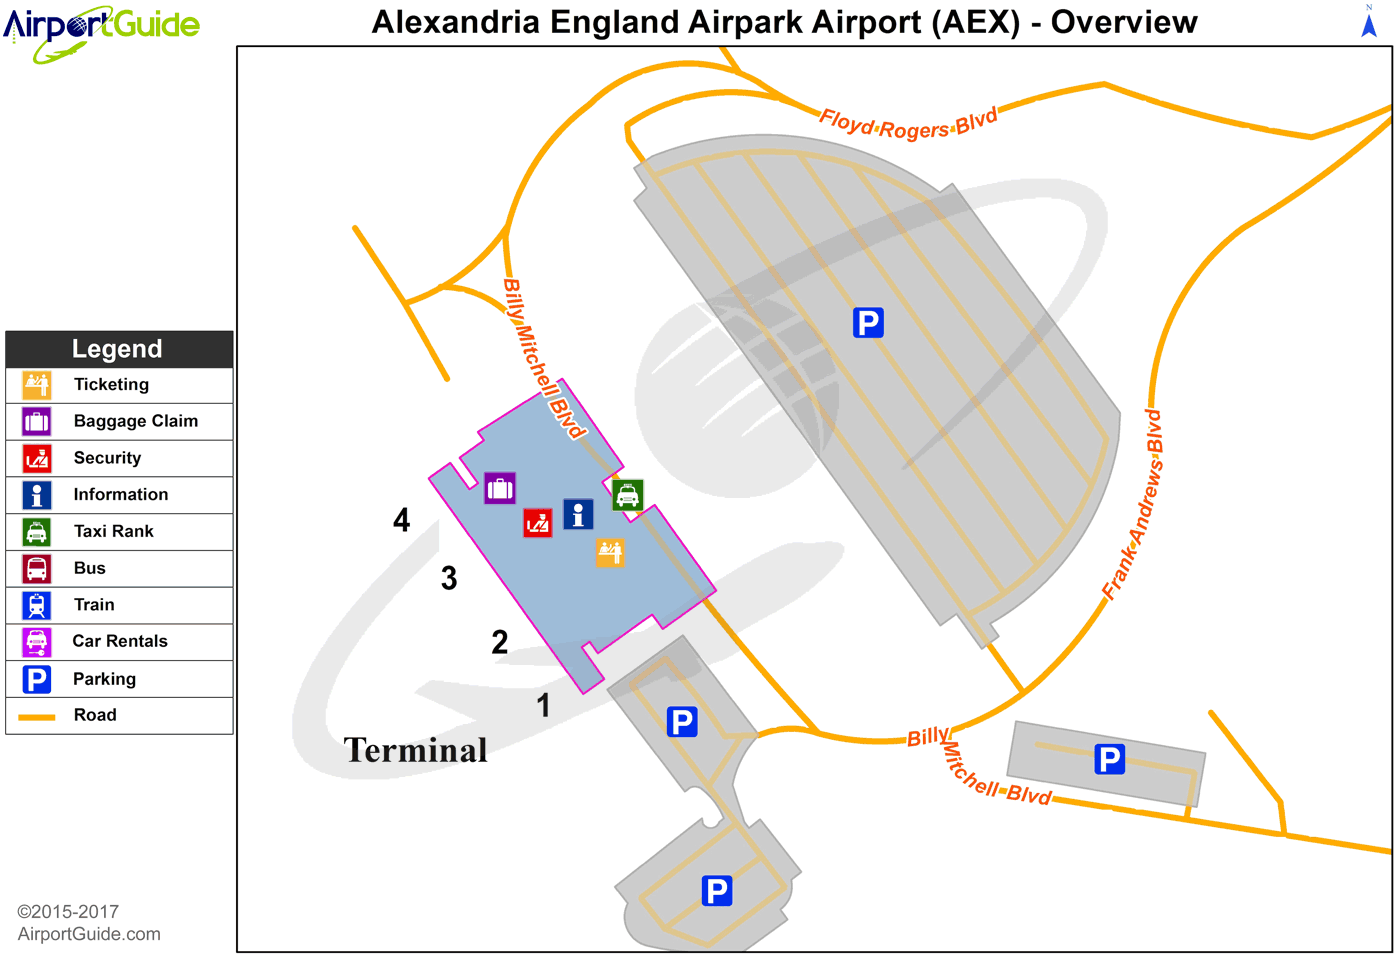 Alexandria - C E 'Rusty' Williams (AEX) Airport Terminal Map - Overview